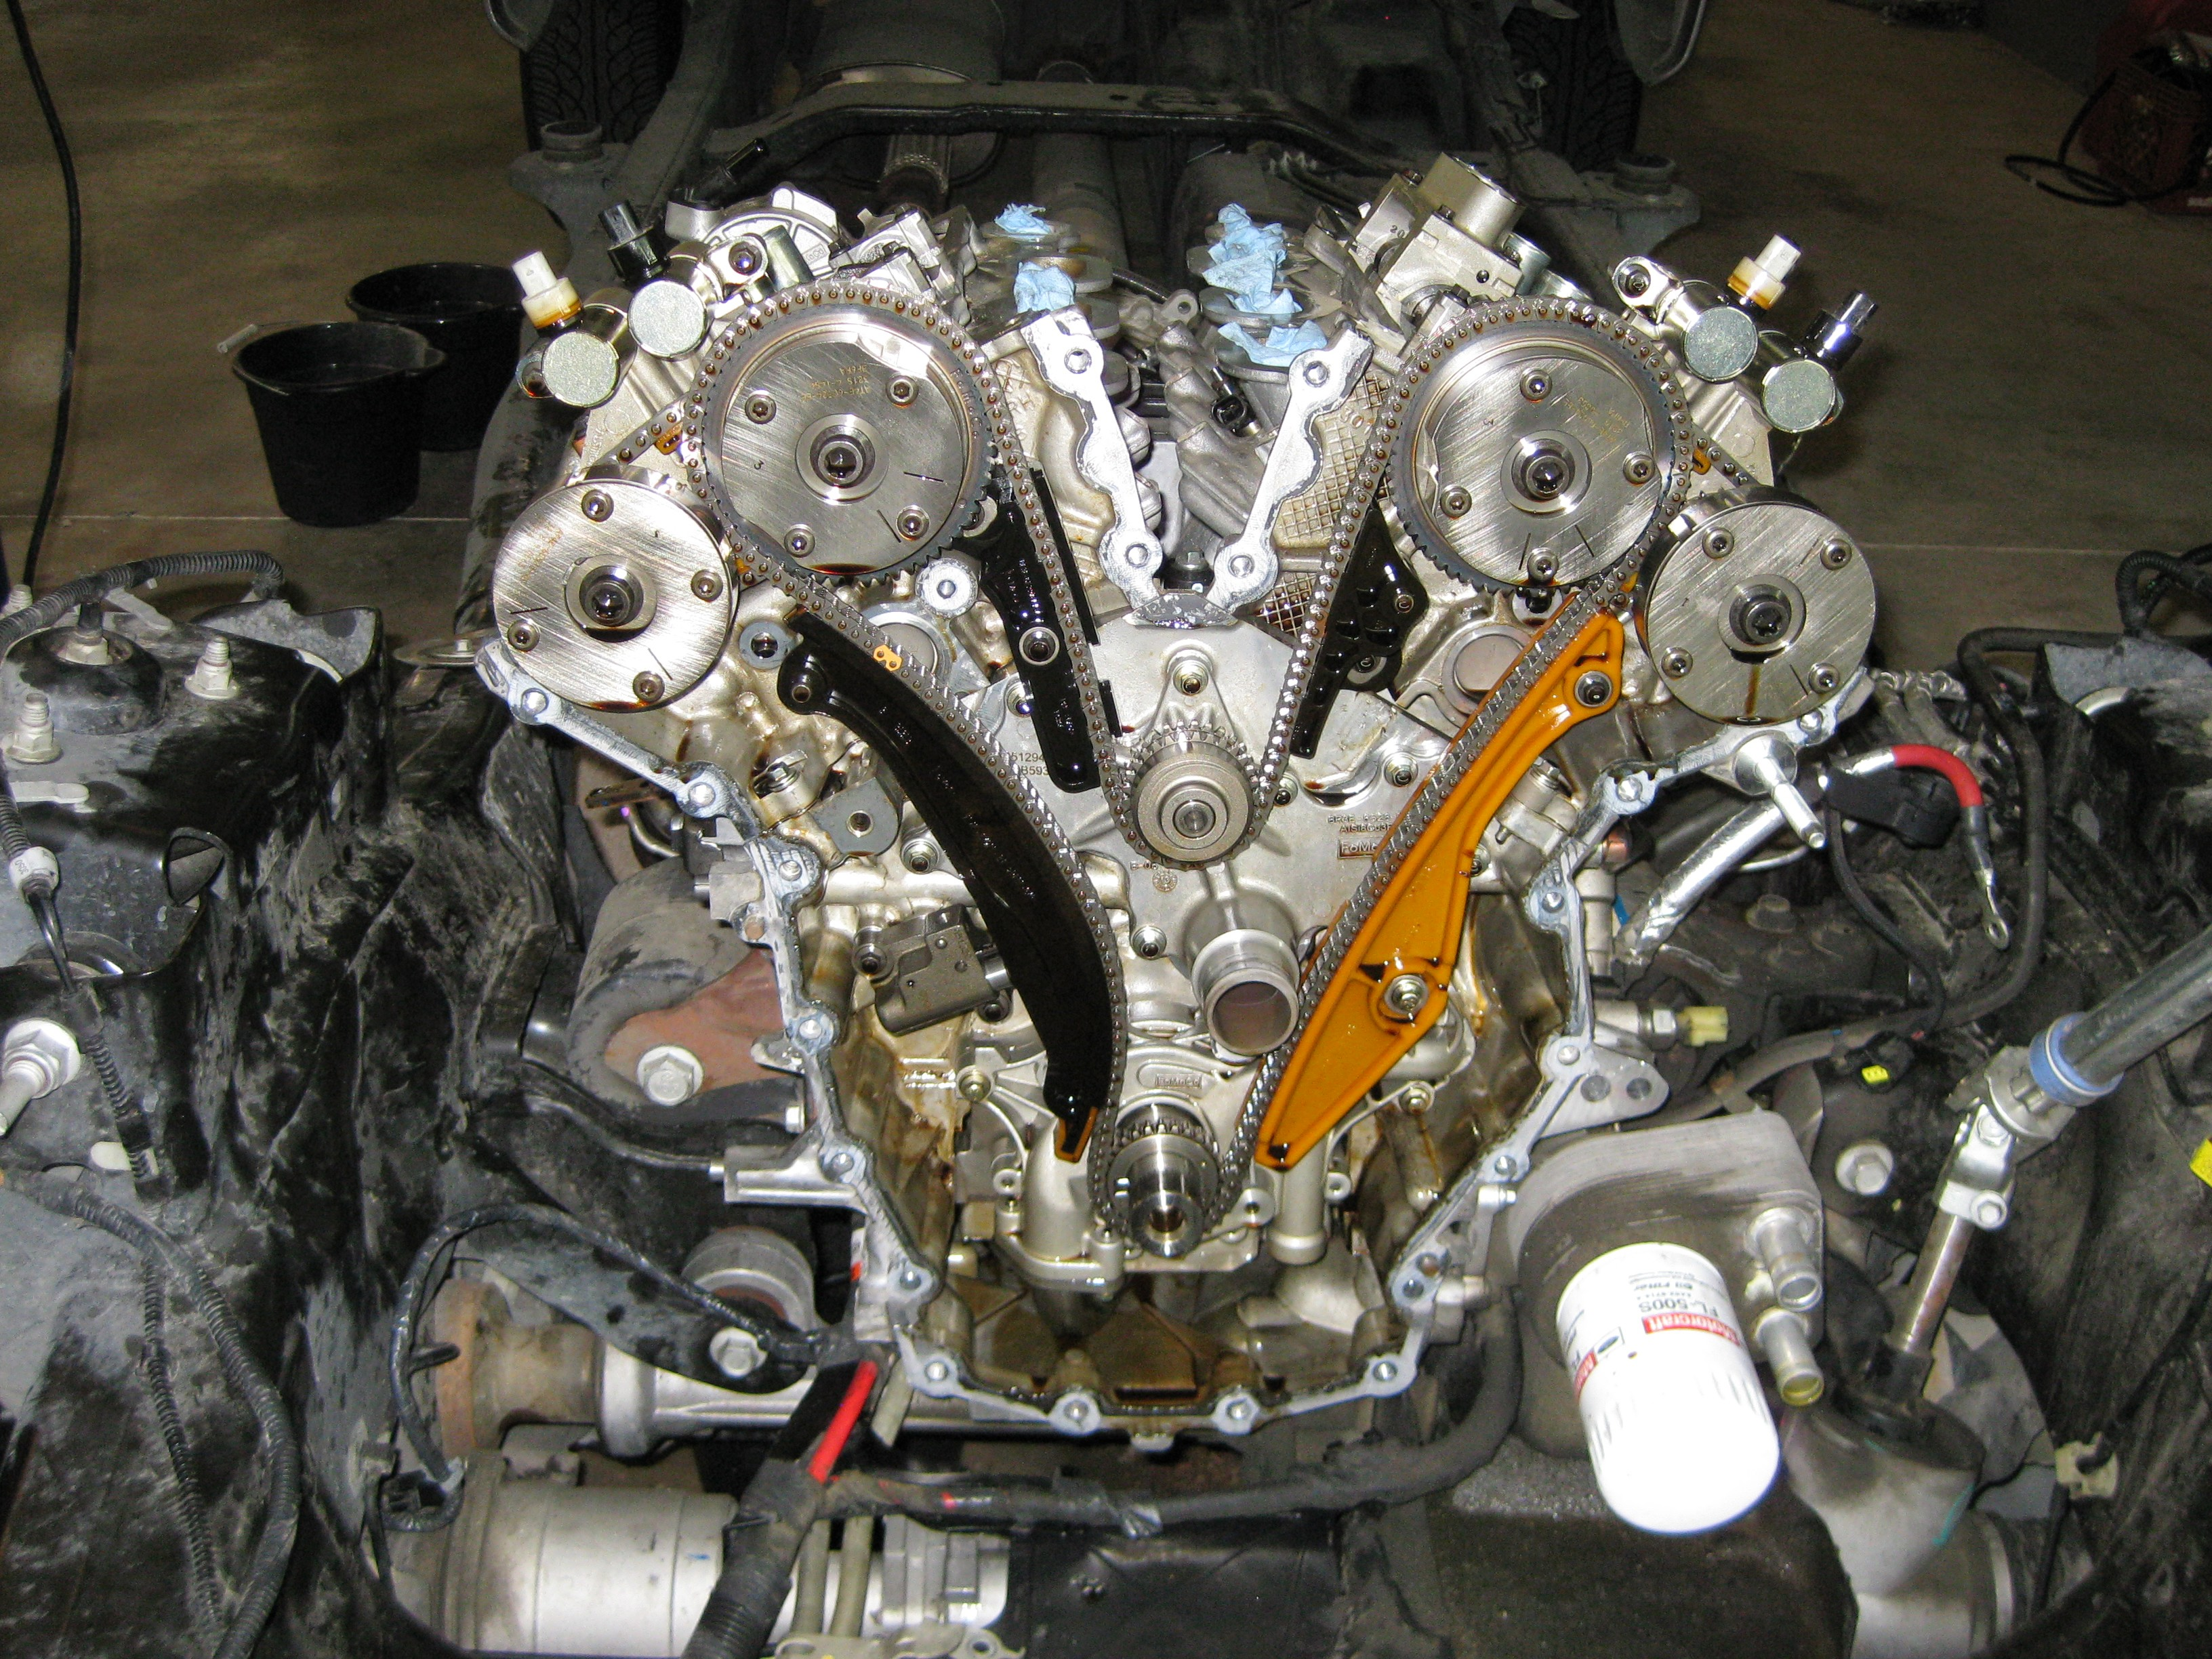 D New Timing Chain Uploadfromtaptalk